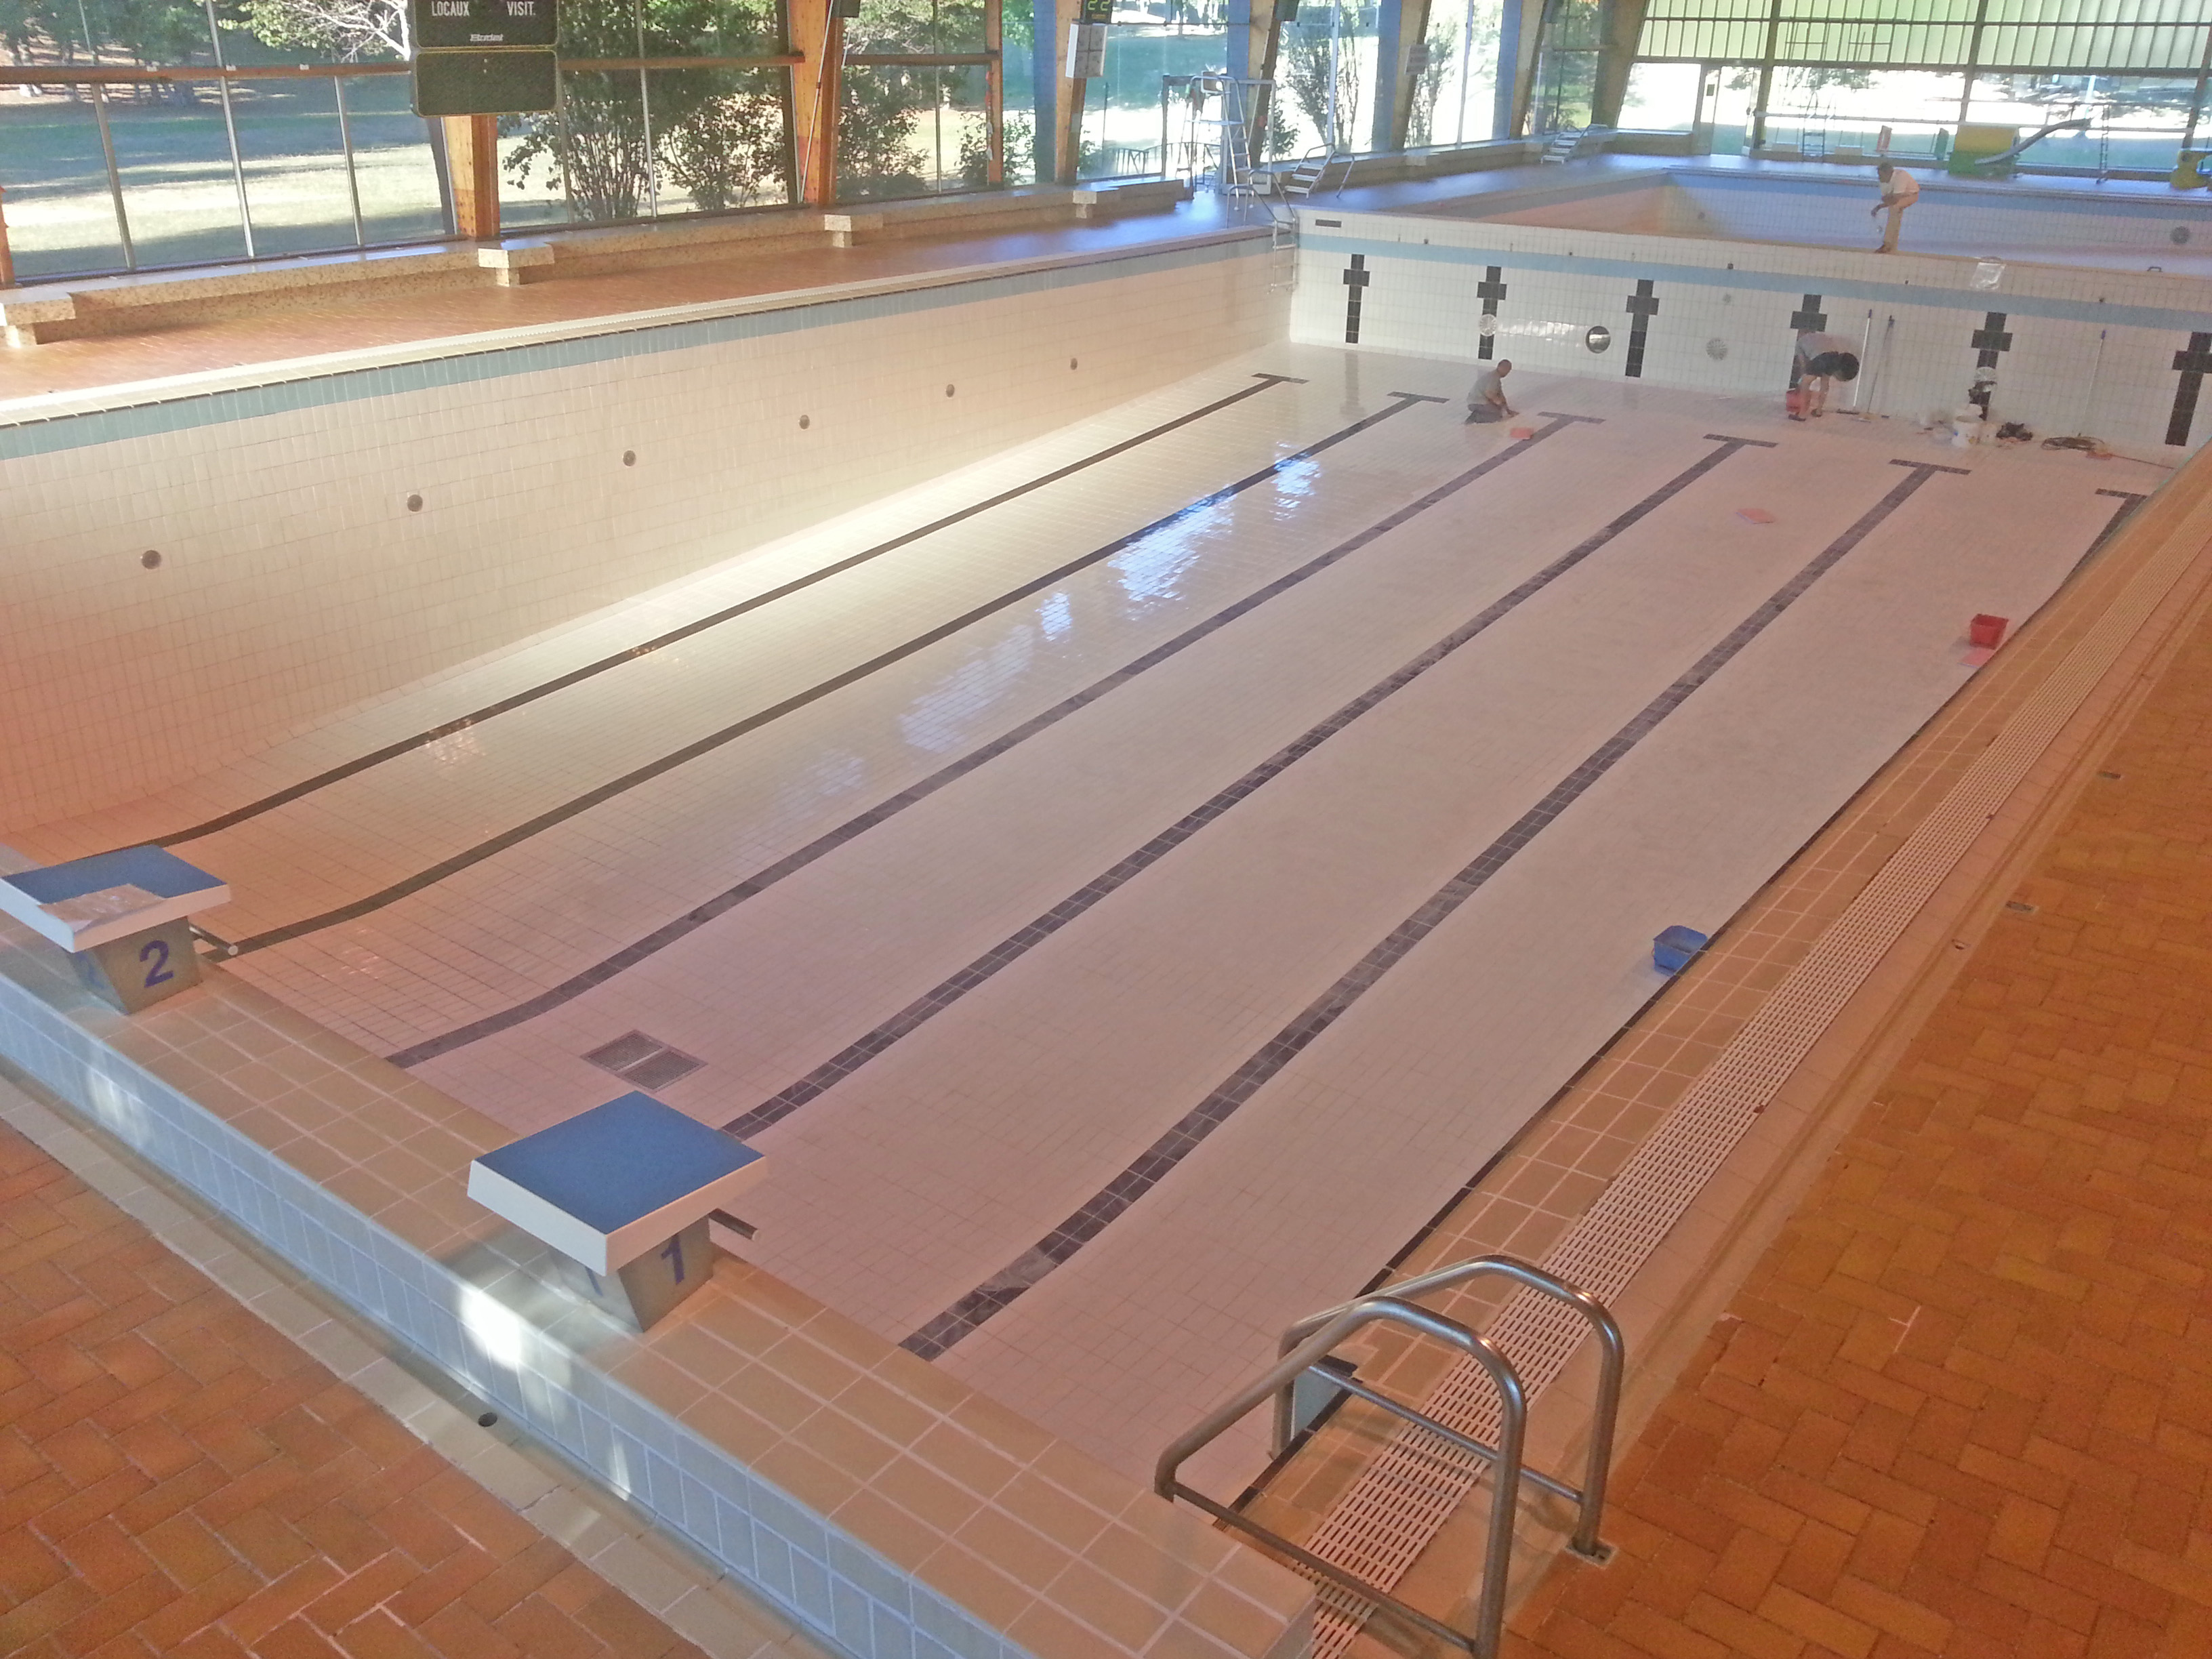 Horaire piscine saint lo id es de for Piscine selestat horaires